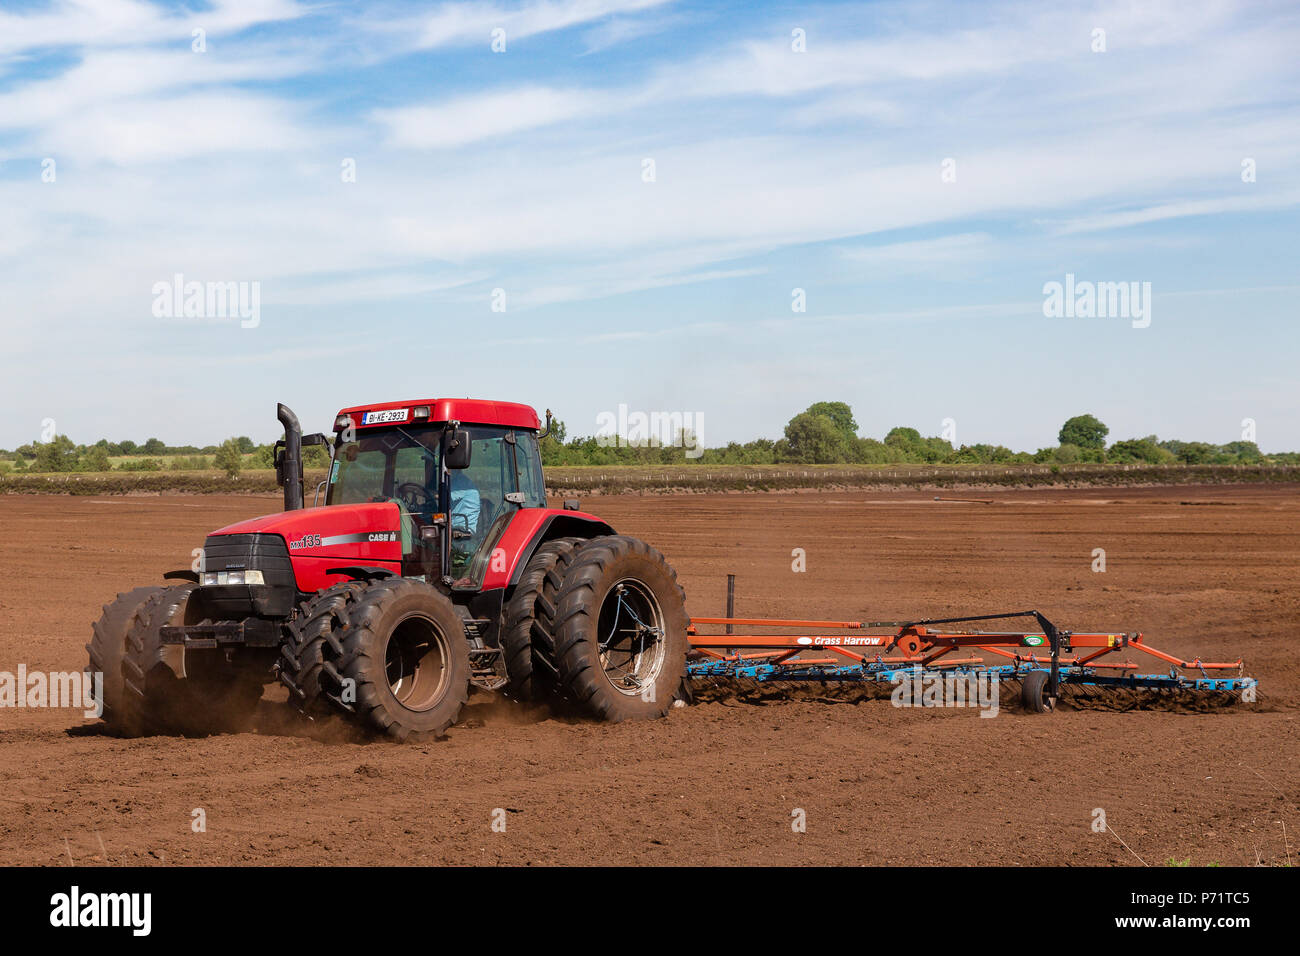 Agricultural tractor pulling the harrow on the peatland to turn over loose milled peat and help it dry out on the sun at the Prosperous Bog in county  - Stock Image